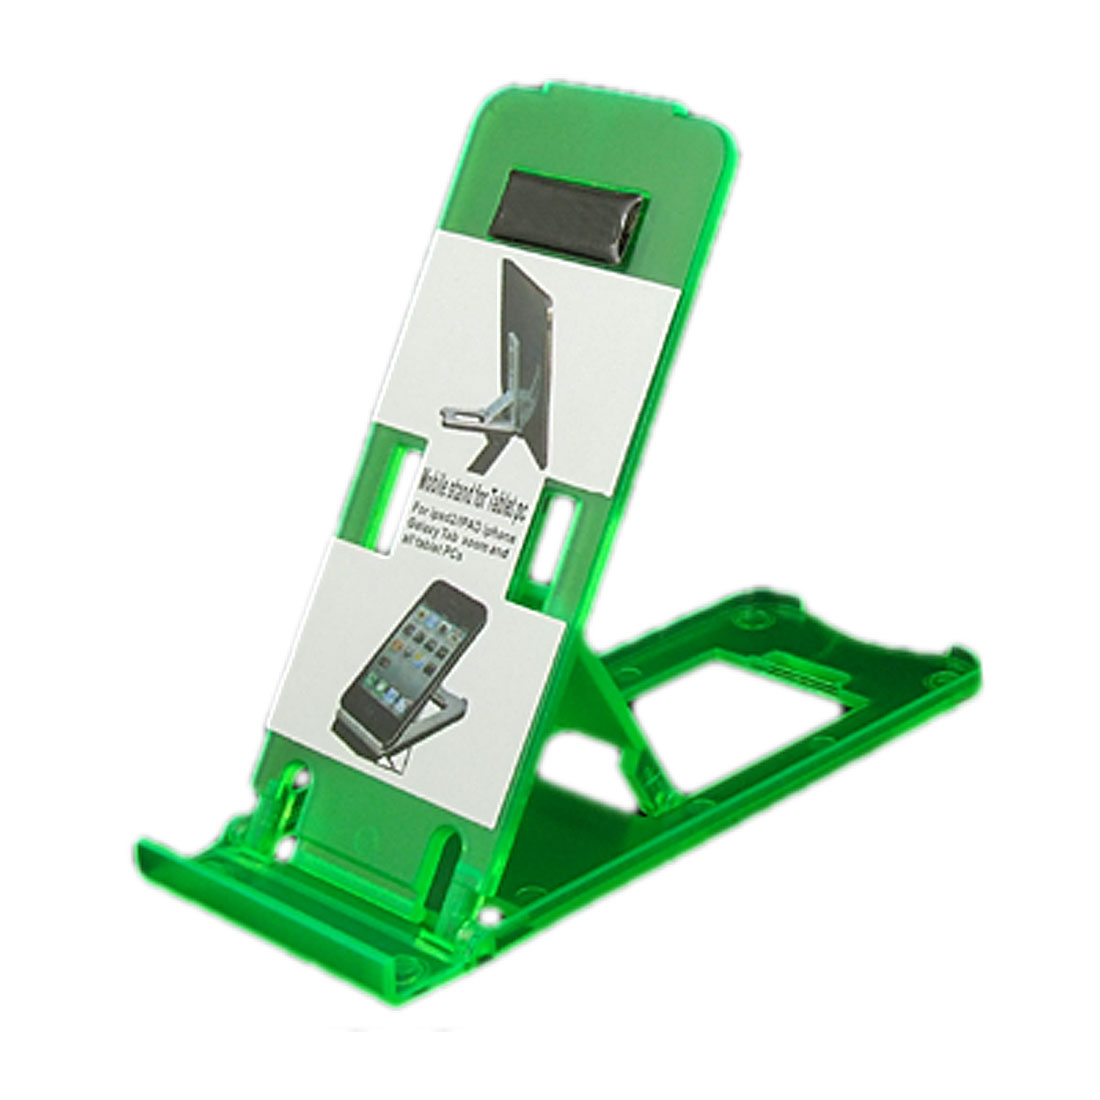 Desk Green Foldable Adjustable Stand Holder